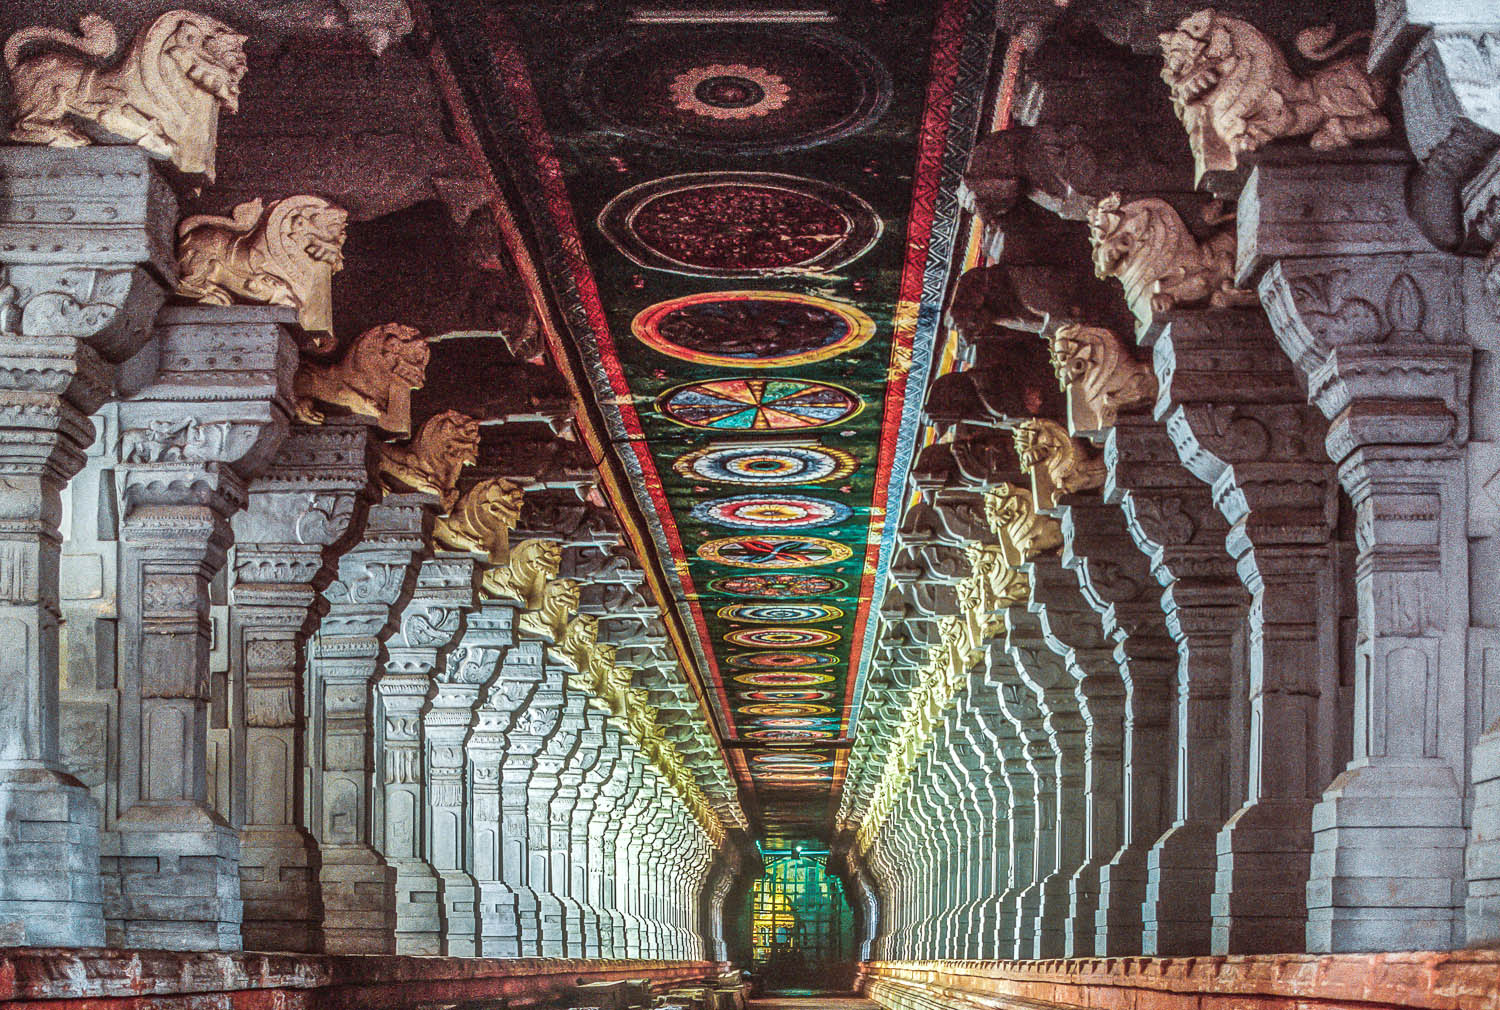 Inside the beautiful Ramanathaswamy Temple. Image: © Anil Dave